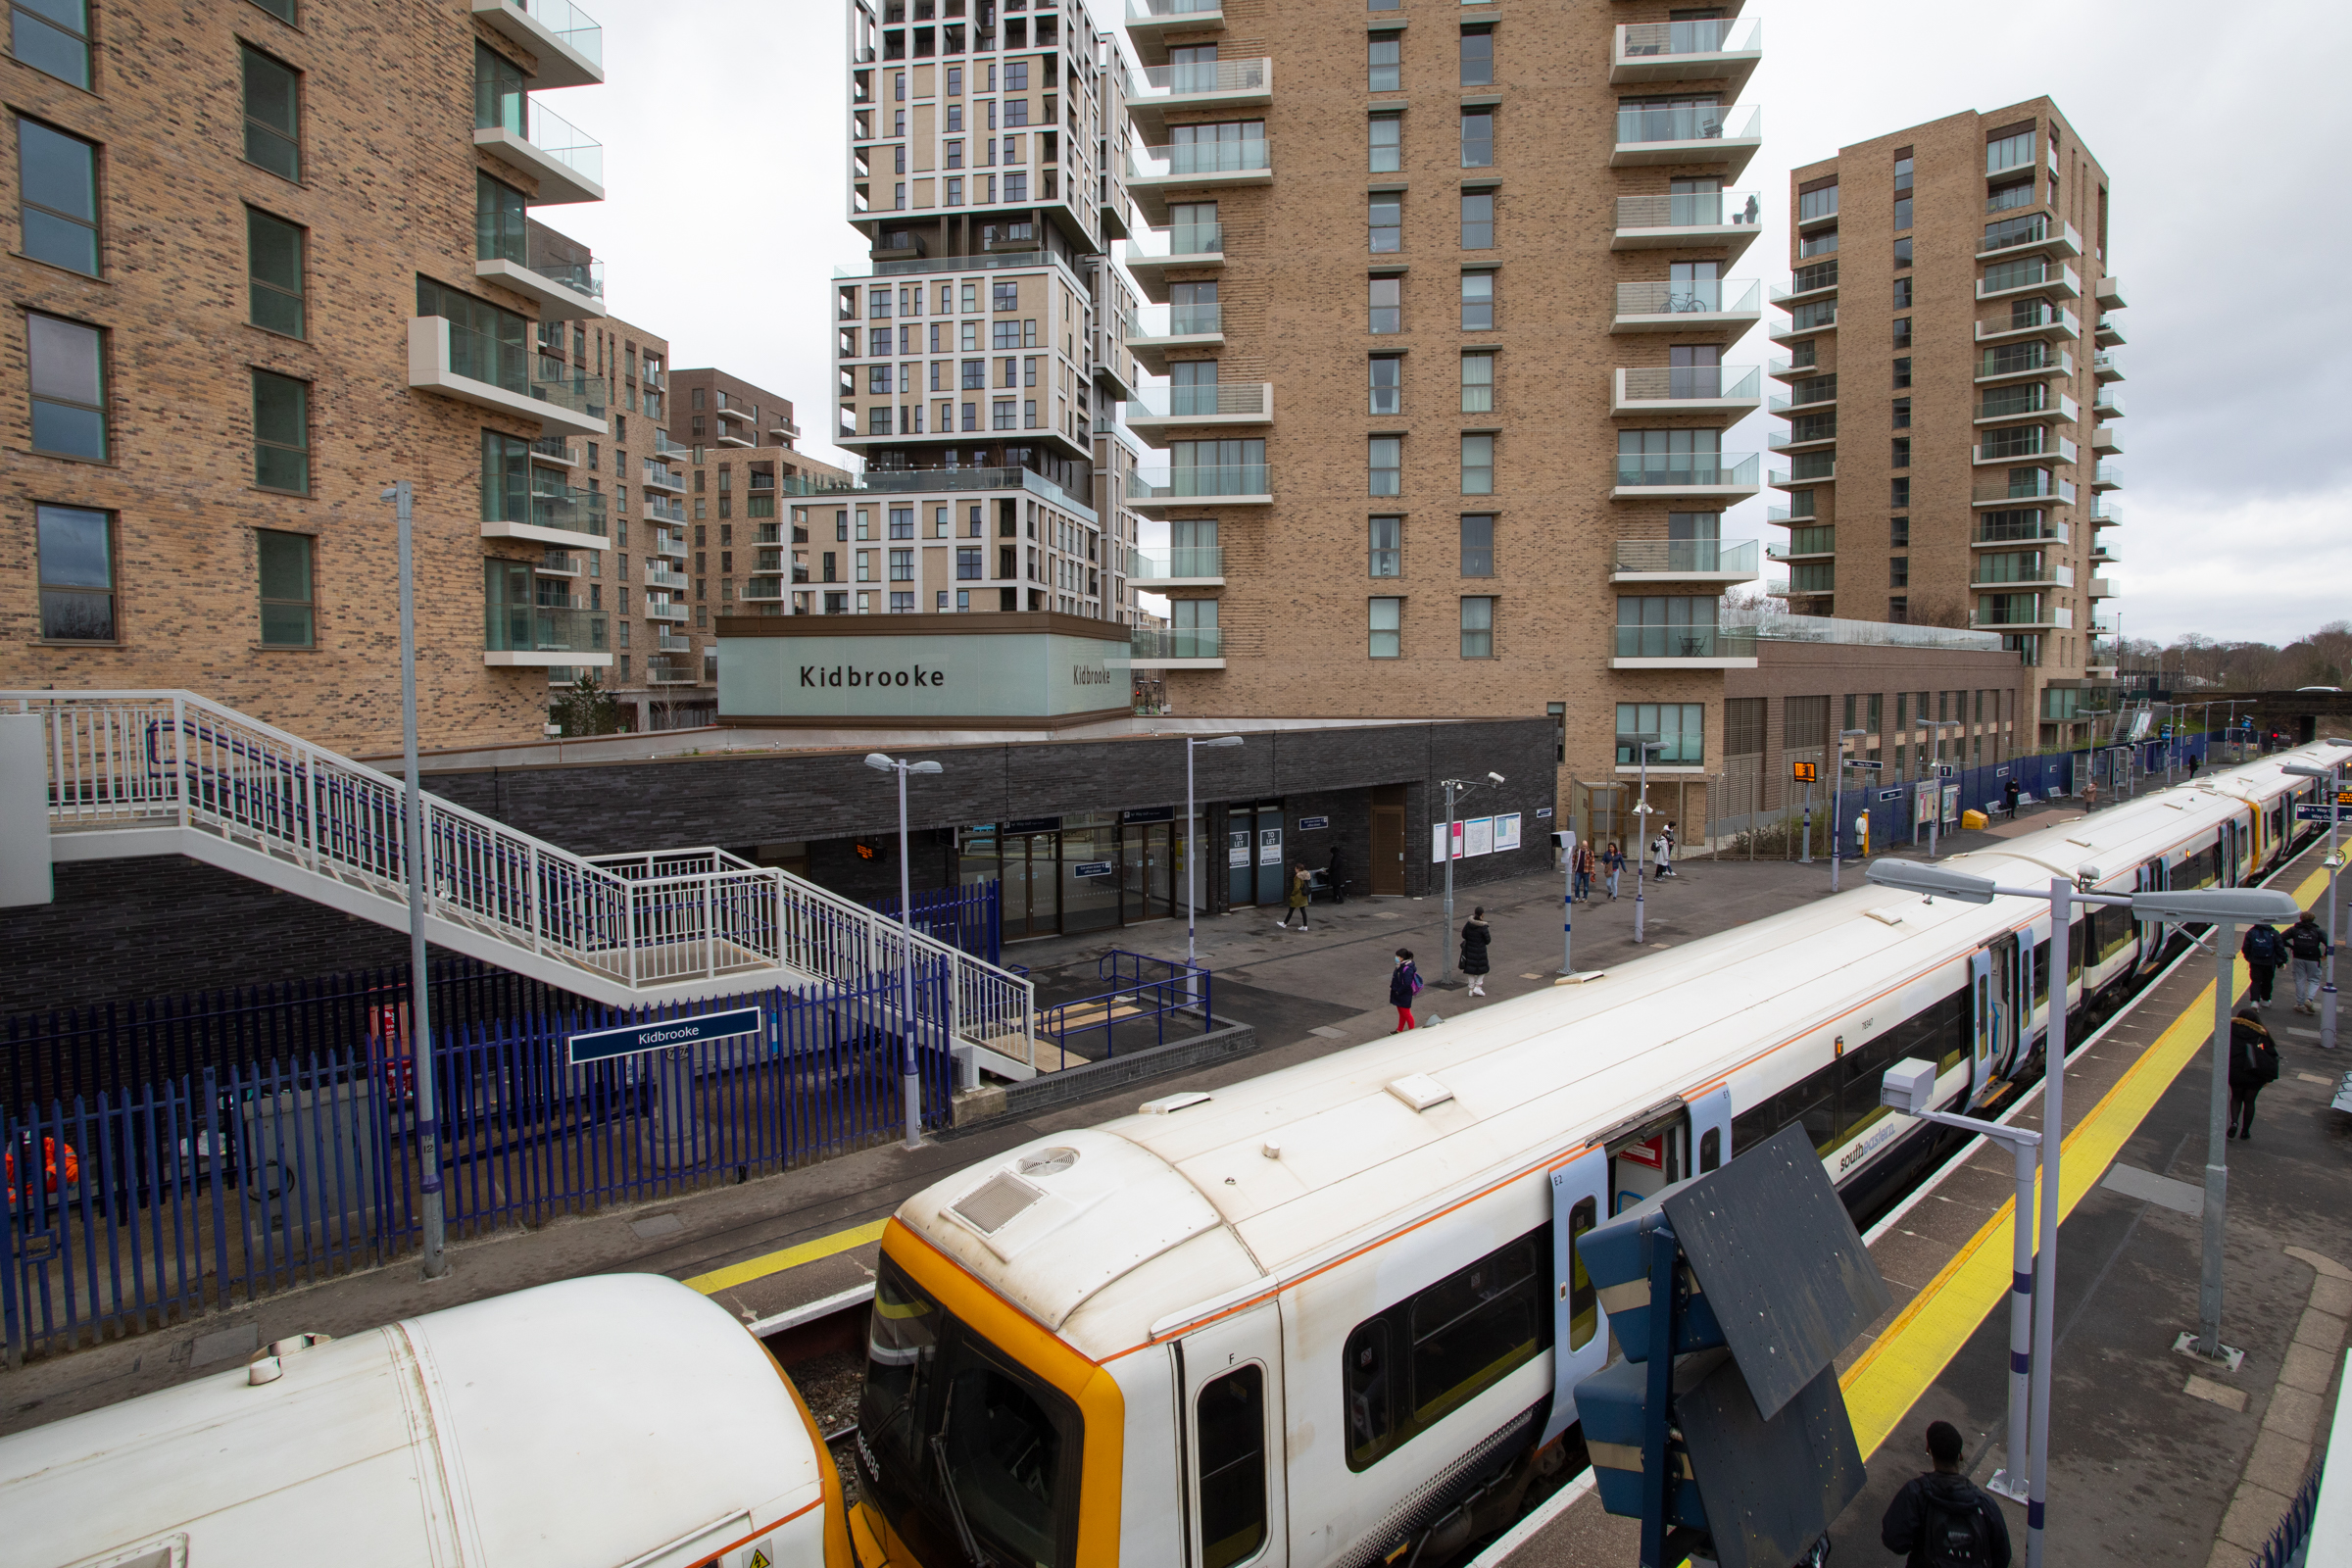 New Kidbrooke railway station opened by Southeastern